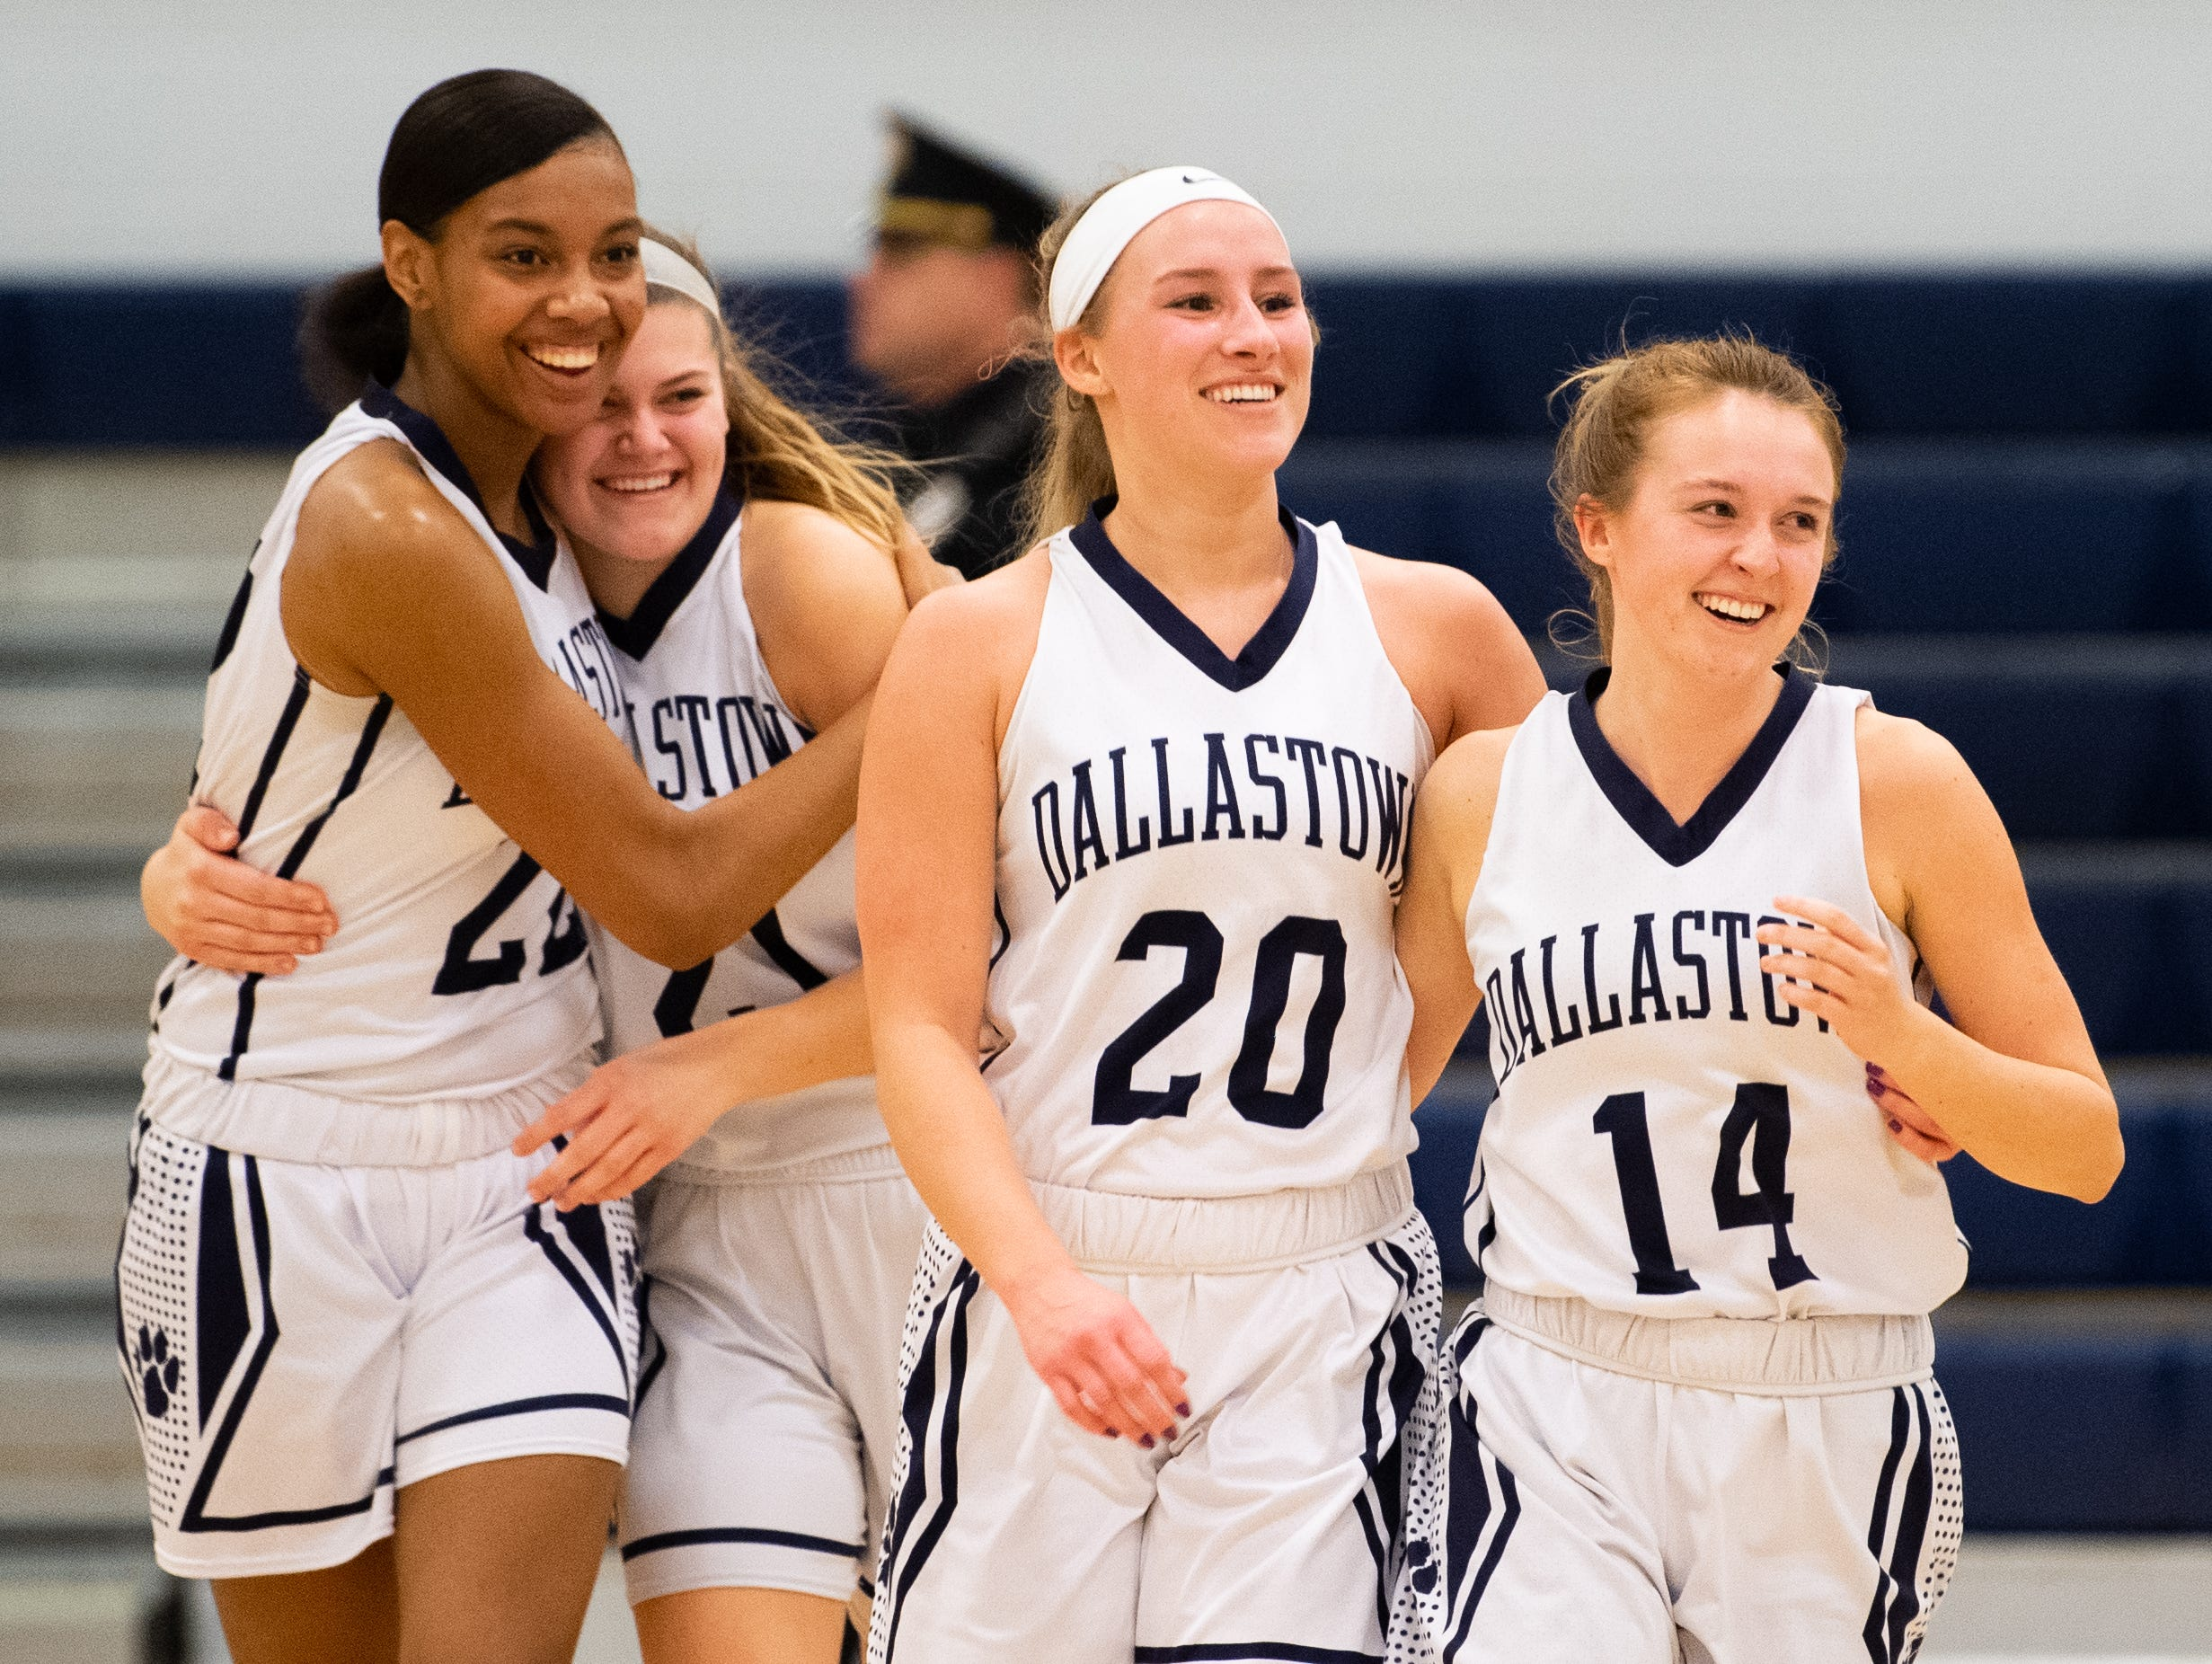 Dallastown celebrates their narrow win over Downingtown East after the PIAA first round girls' basketball game Friday, March 8, 2019 at West York Area High School. The Wildcats defeated the Cougars 43 to 39.